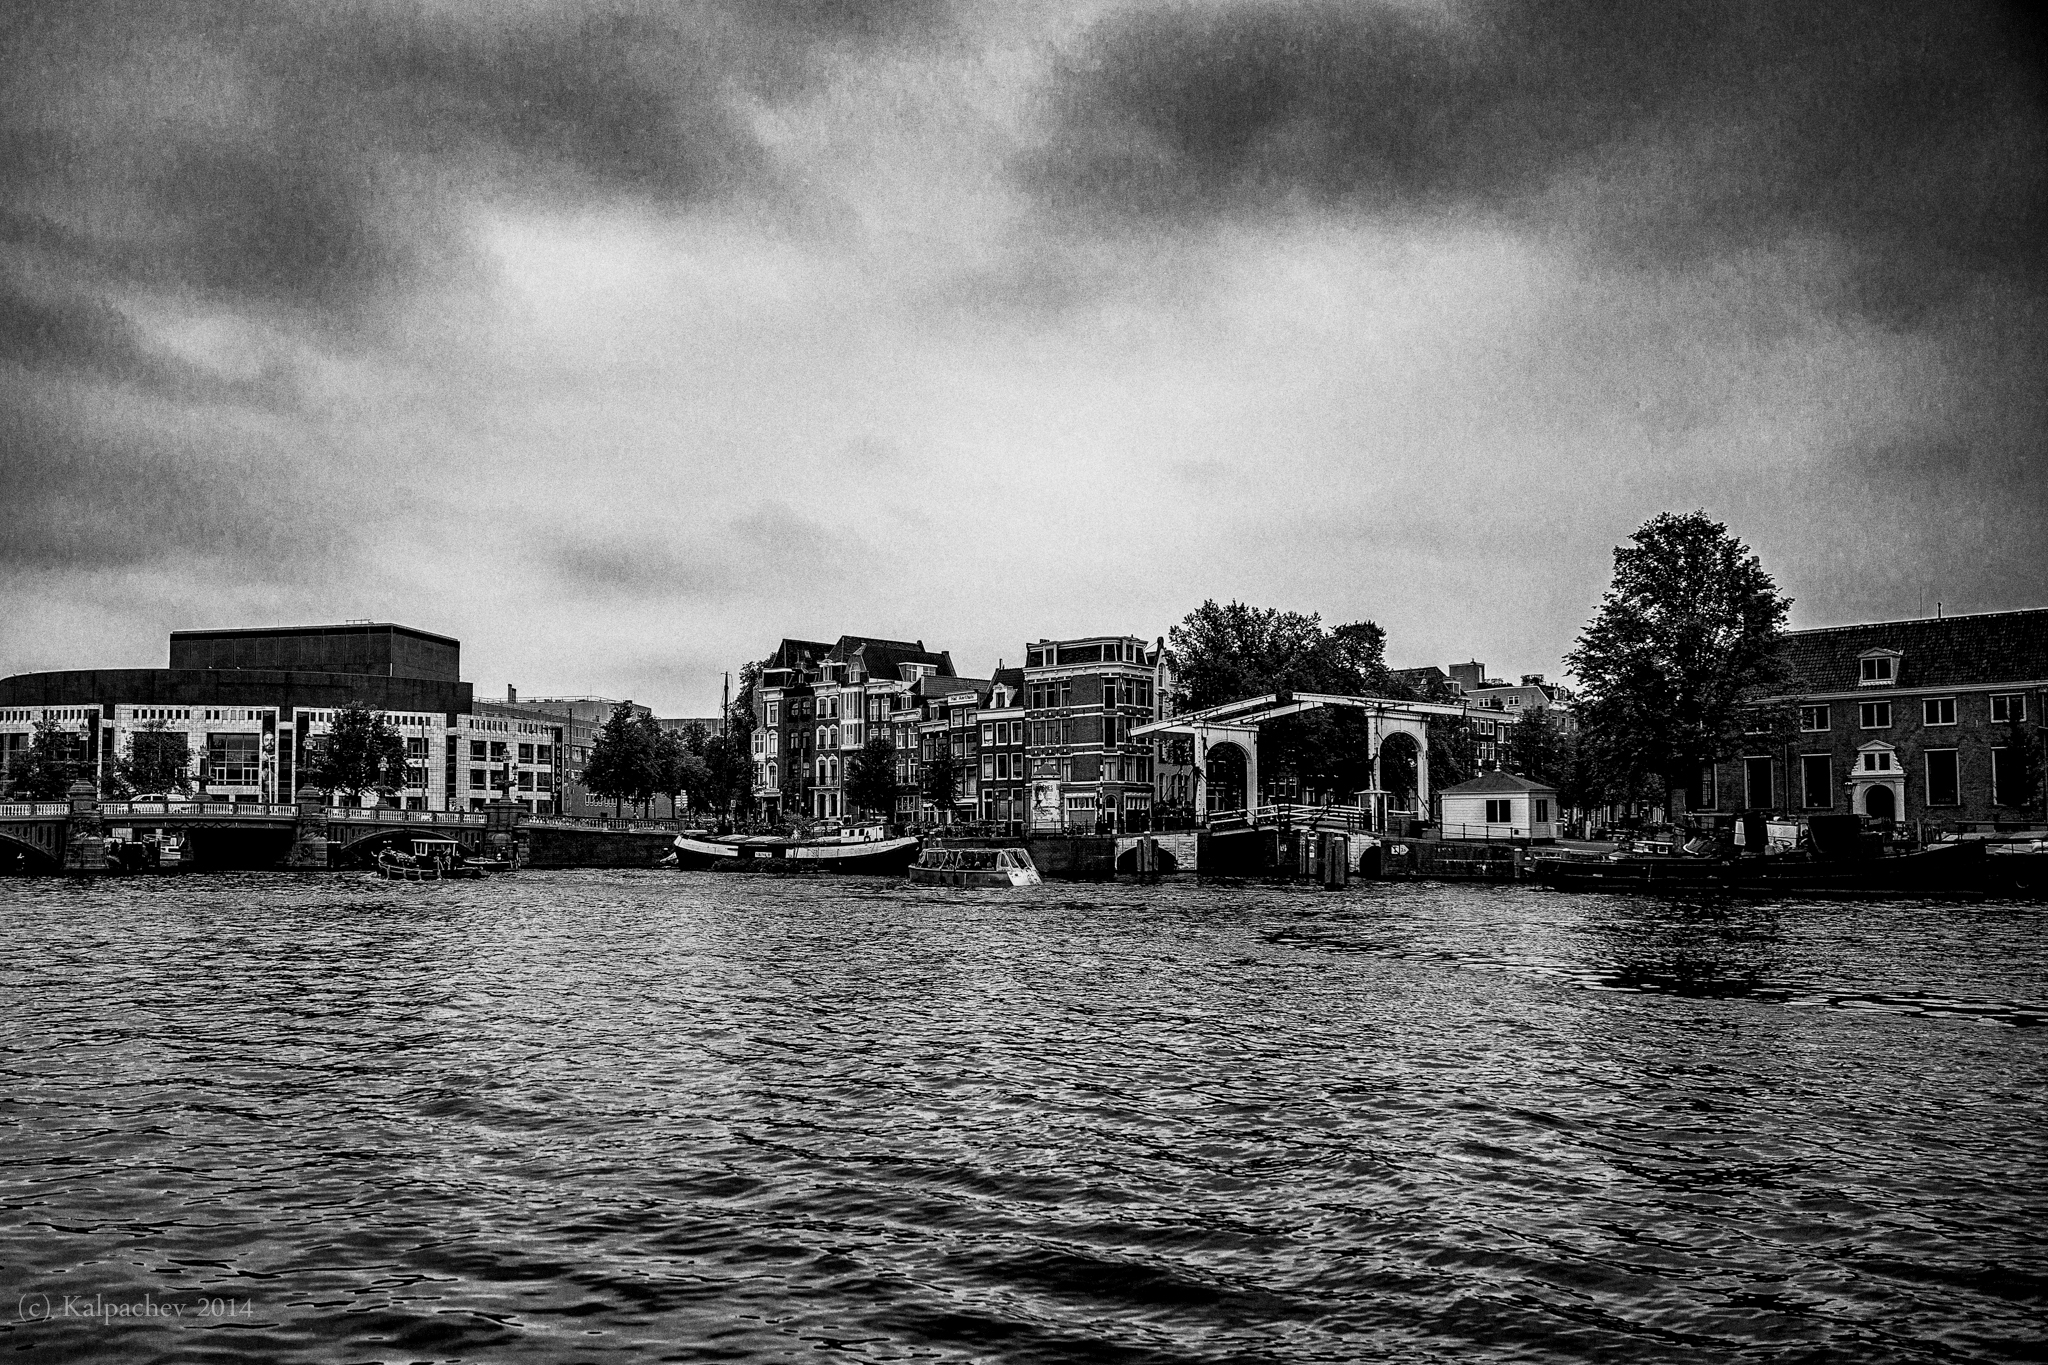 Amsterdam, Netherlands  Photo taken by me on my trip around Europe  September, 2014